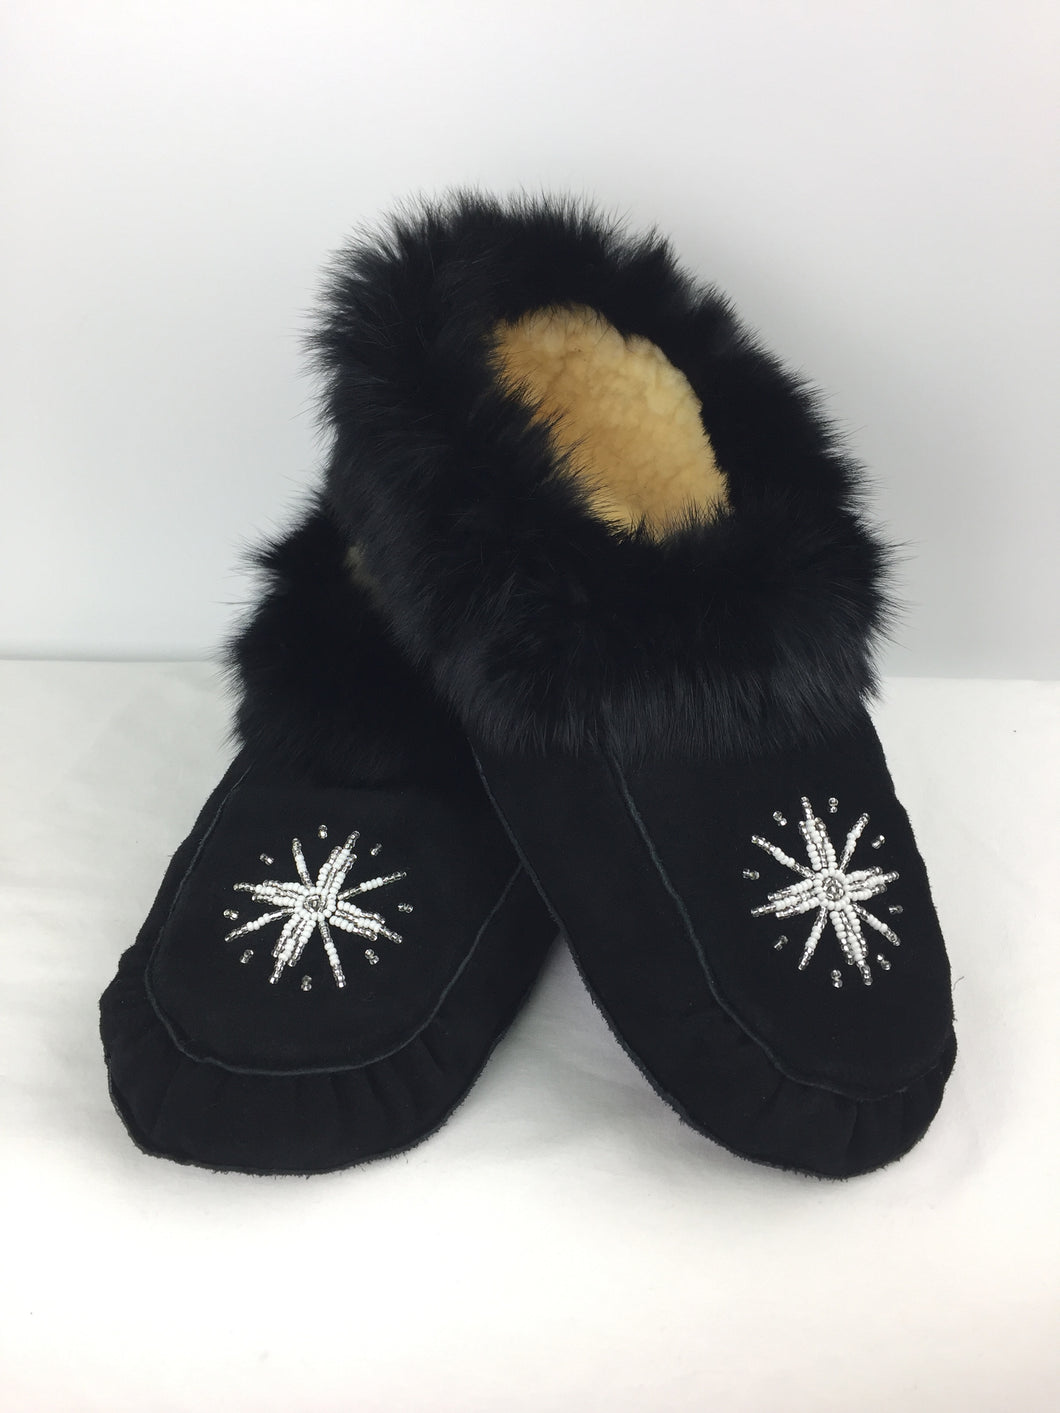 Traditional Black Moccasins